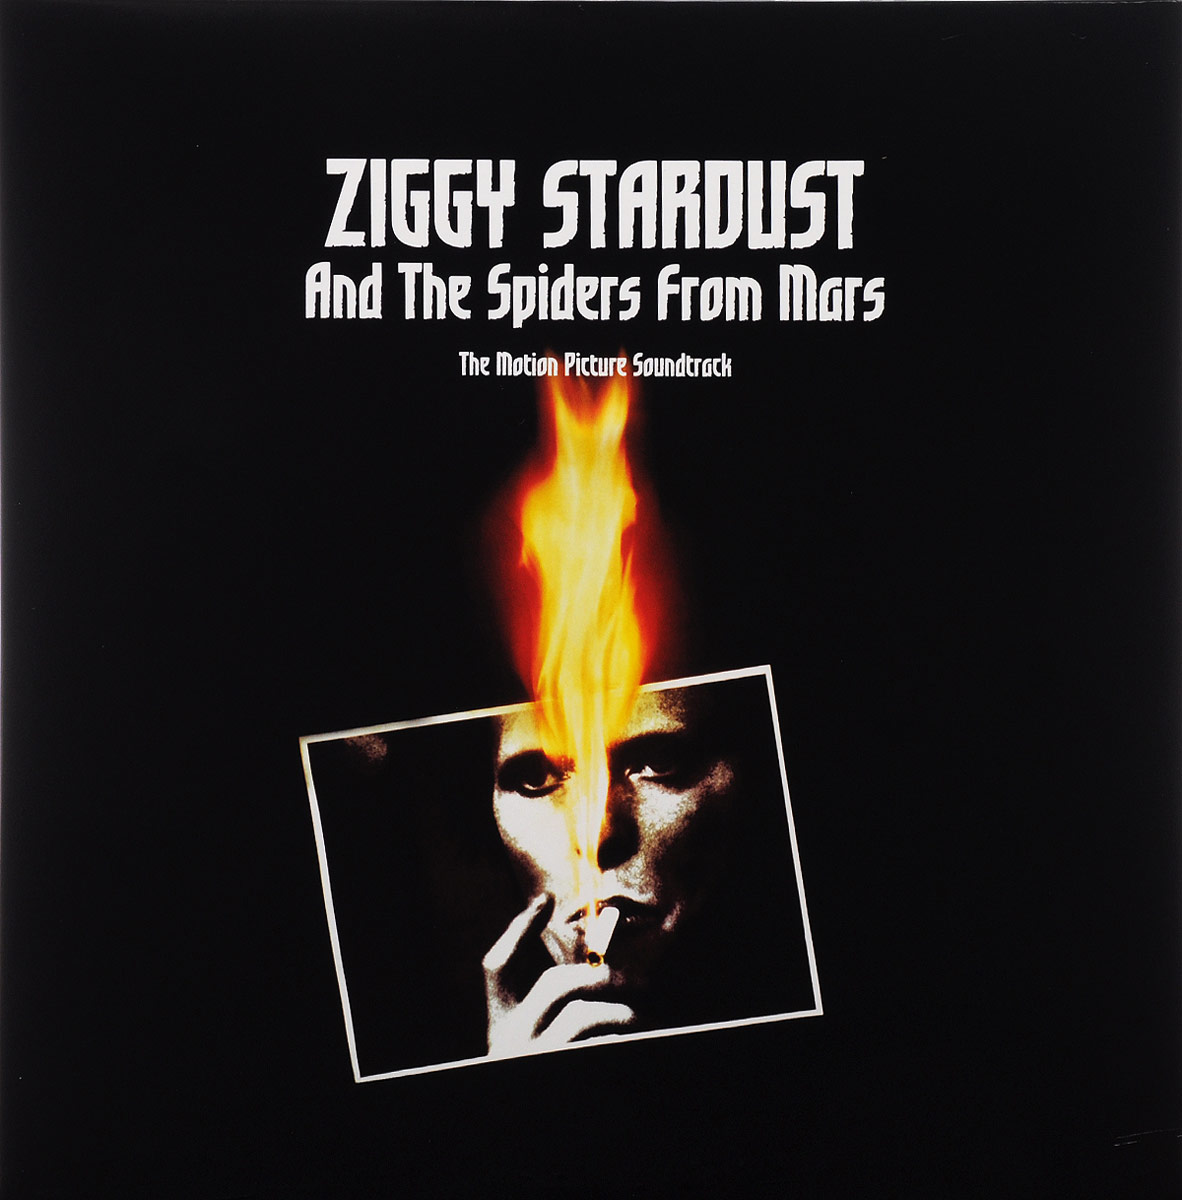 Дэвид Боуи Ziggy Stardust And The Spiders From Mars The Motion Picture Soundtrack (2 LP) виниловая пластинка cd david bowie ziggy stardust and the spiders from page 3